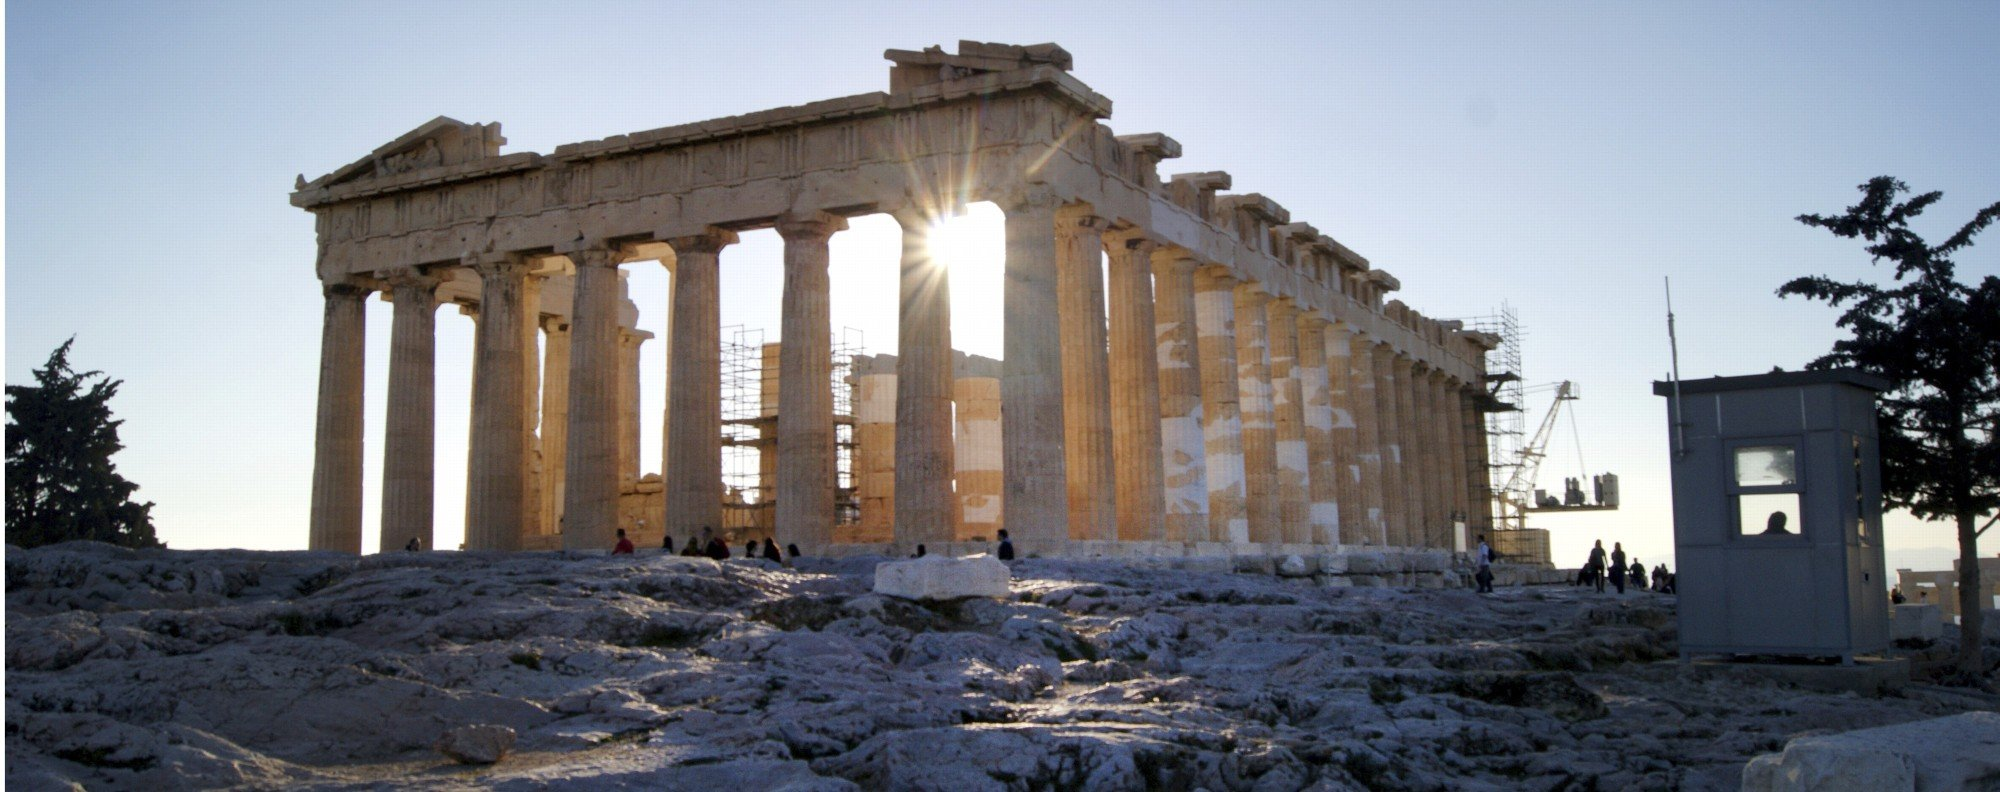 The Parthenon - built in nine years, under repair for the past 40-something years. Picture: AP